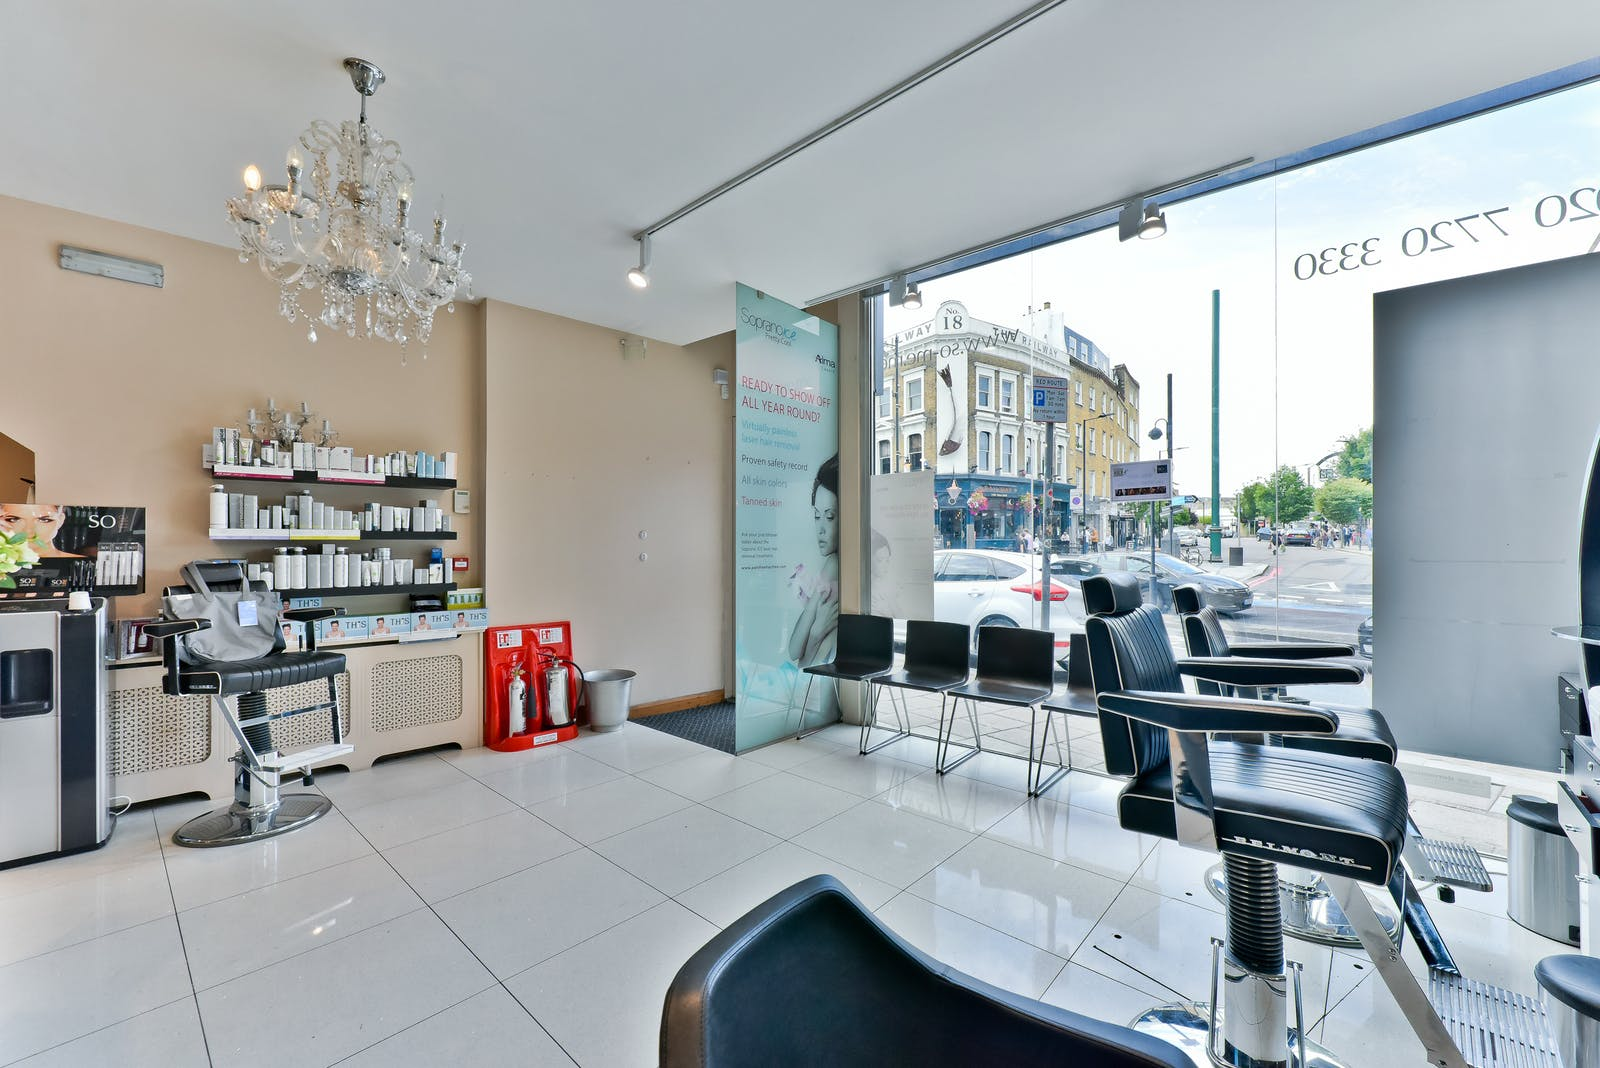 21 Clapham High Street, London, Mixed Use For Sale - 21 Clapham High Street, SW4 7TR picture No. 14